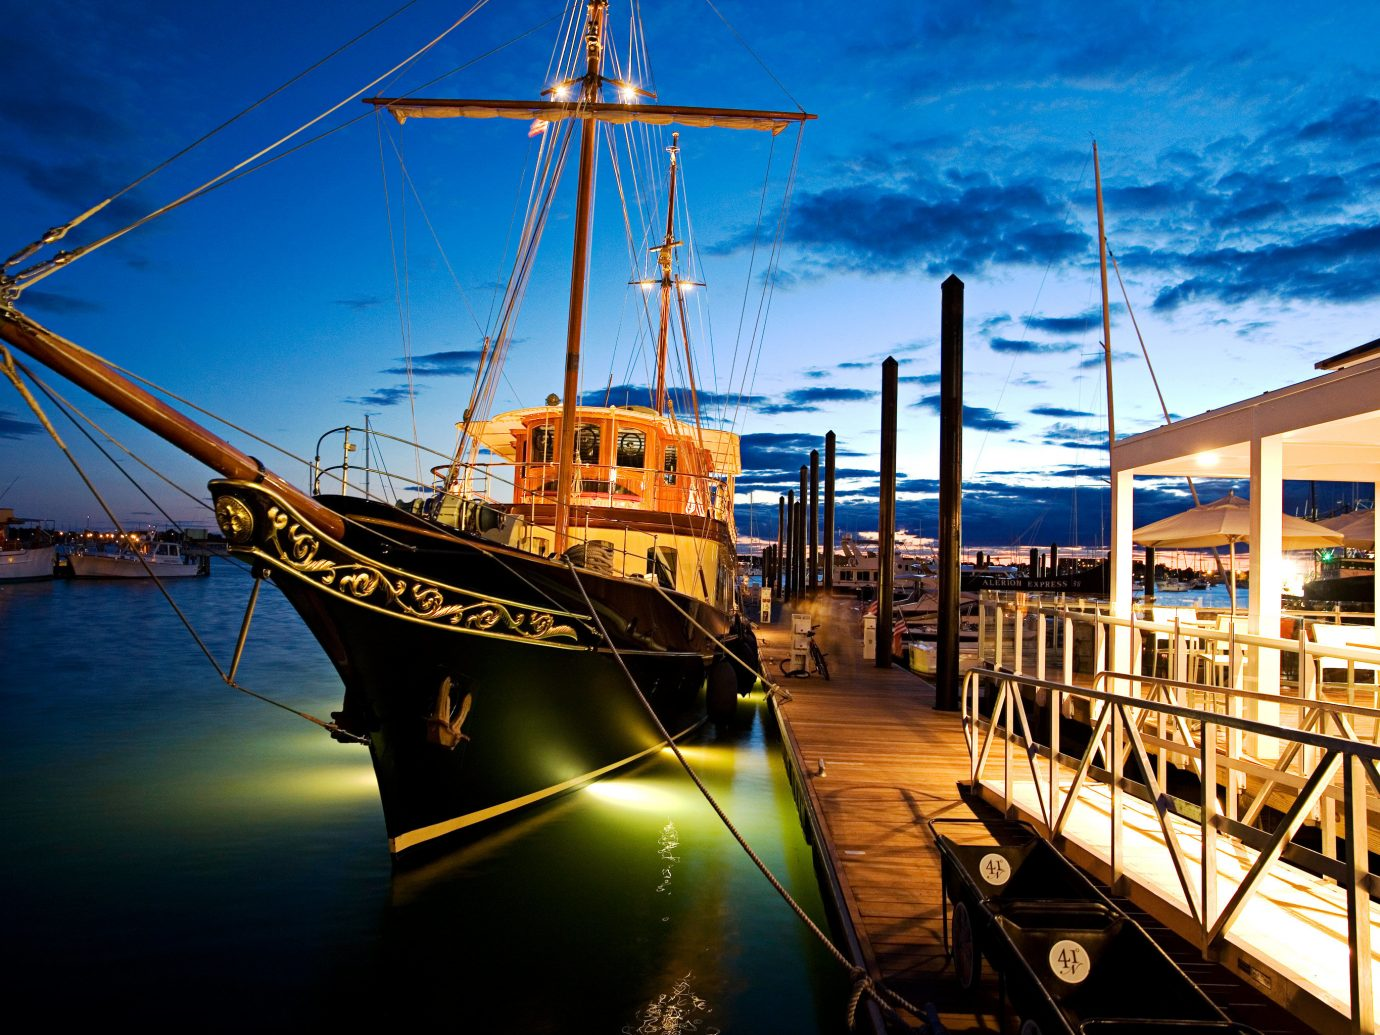 Hotels Boat outdoor sky water vehicle scene reflection night Sea evening Harbor watercraft sailing ship Sunset dock ship tall ship mast dusk cityscape port docked marina